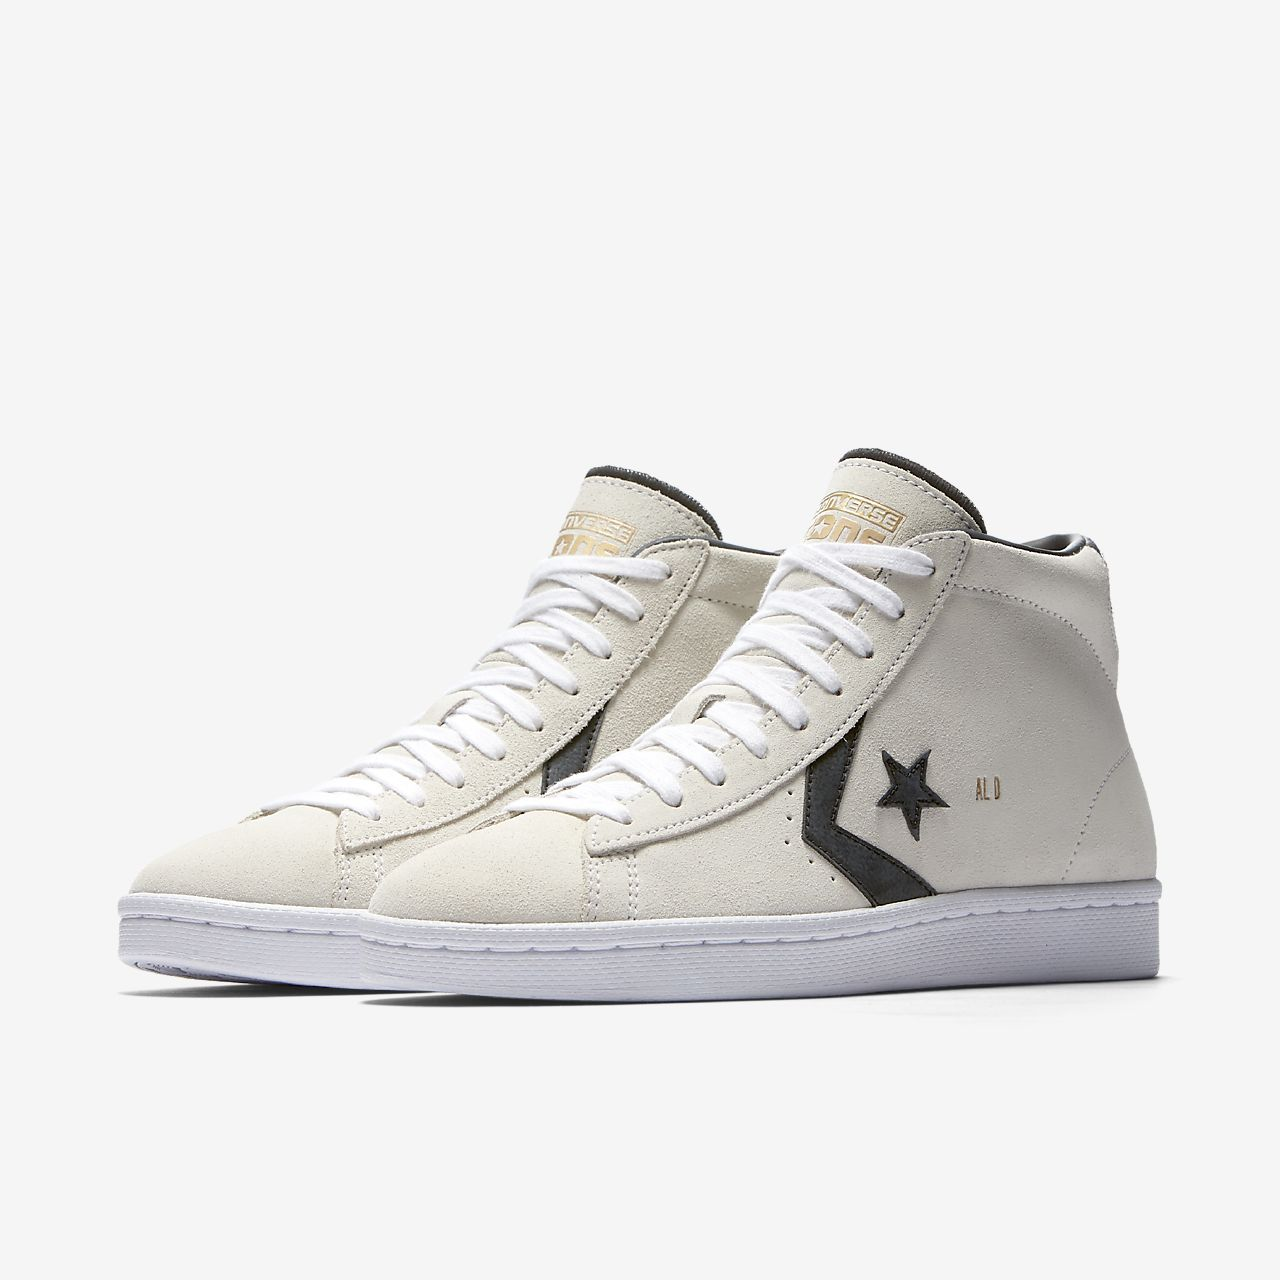 converse pro leather high top